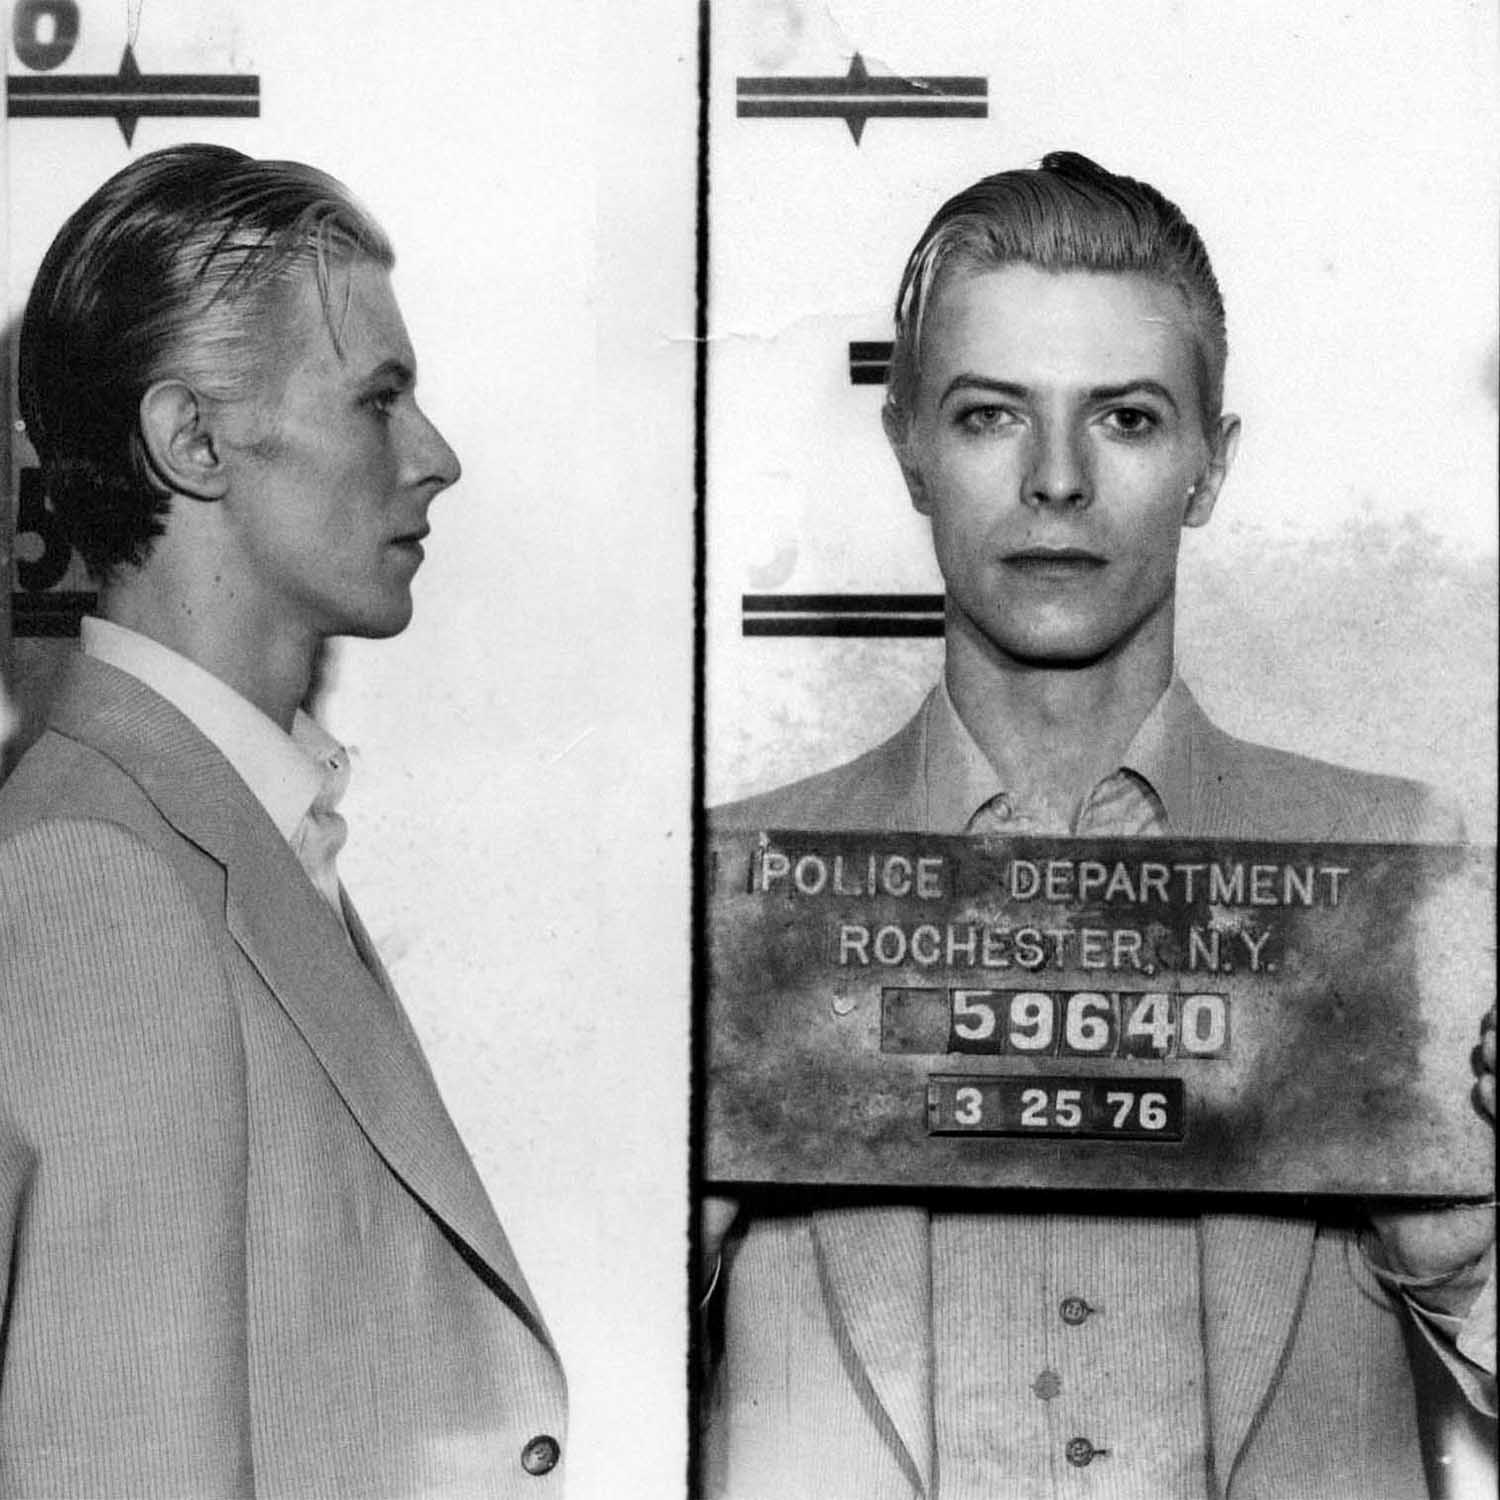 David Bowie, 1976   The English Rockstar David Bowie   (born David Robert Jones) was  arrested for marijuana possession  in Rochester, New York in May 1976 after a performance at the Community War Memorial. Both Bowie and Iggy Pop were arrested when police found 6 ounces of marijuana in their hotel rooms. Pop and Bowie spent one night in jail and were then released on bail. Charges were dismissed when a grand jury declined to indict them.